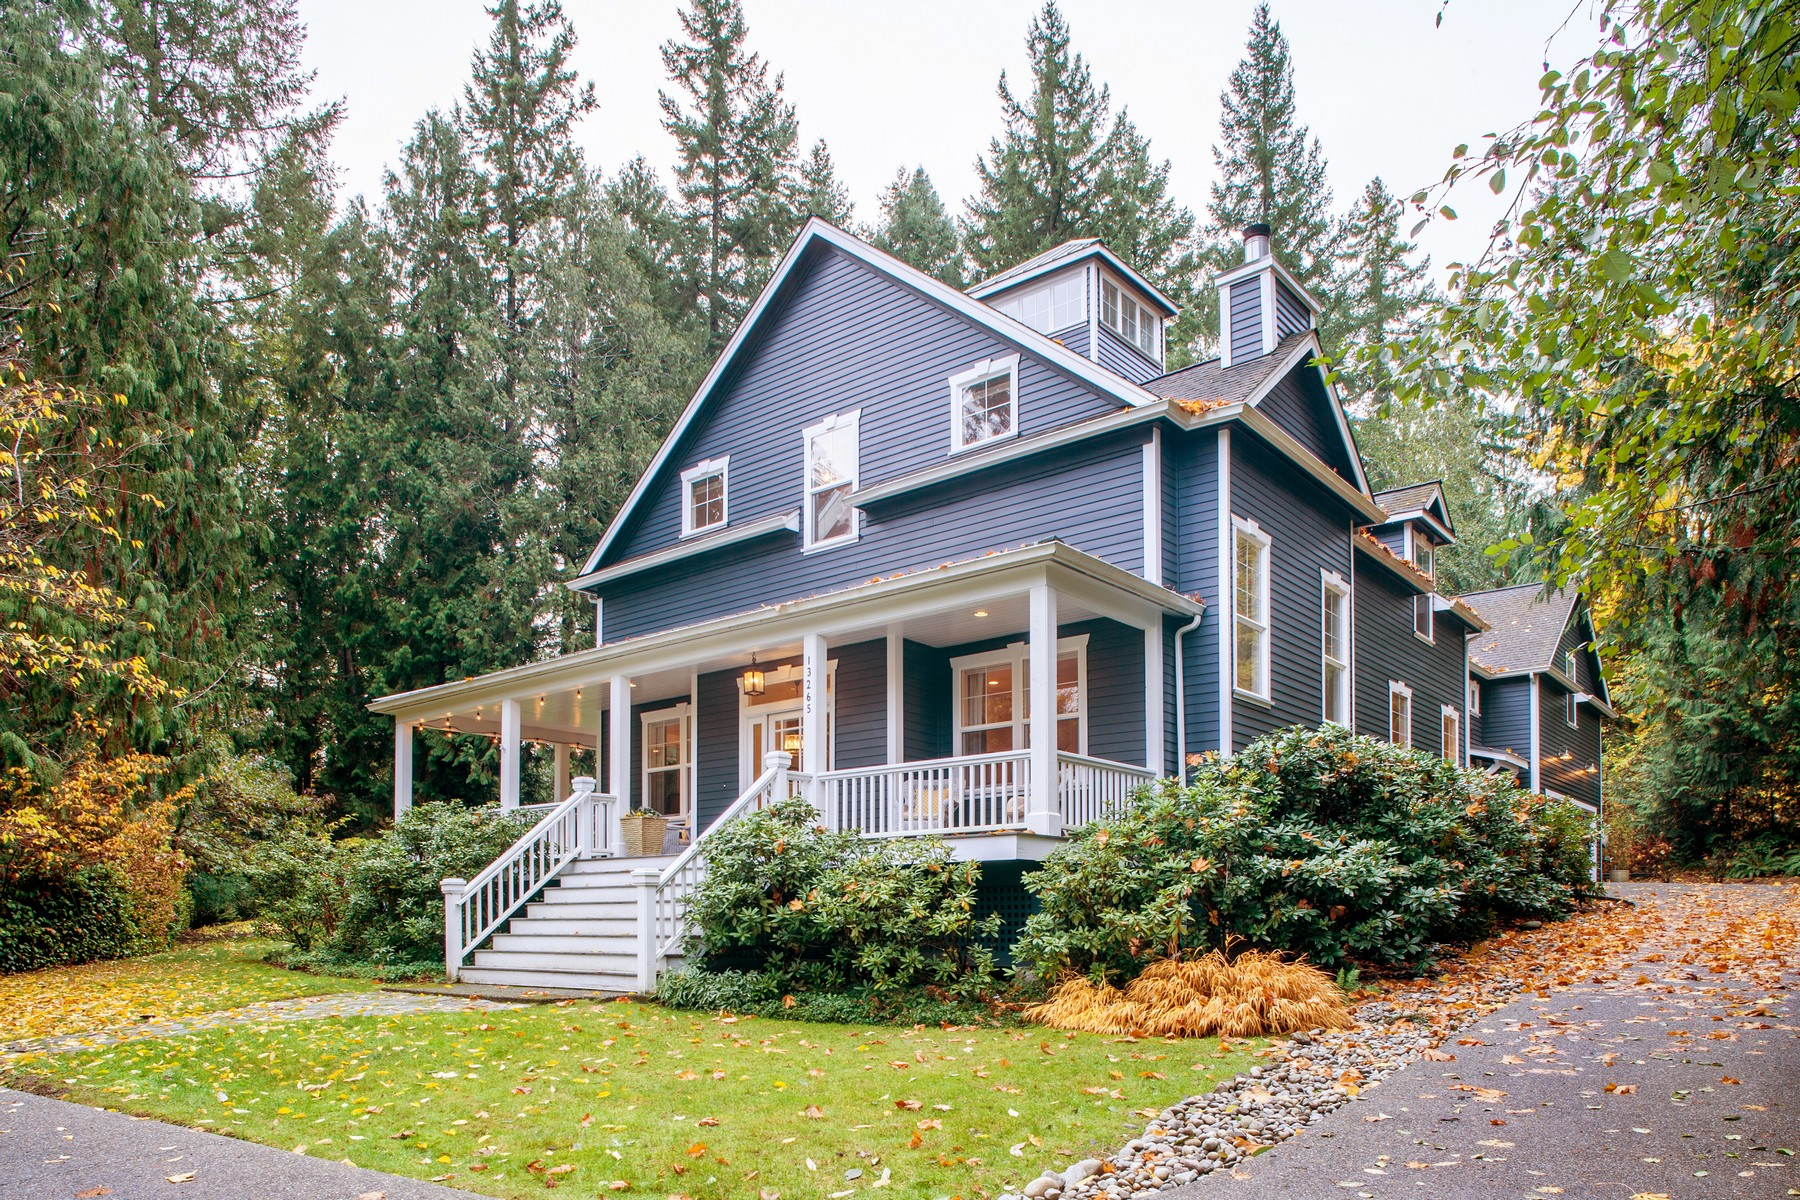 Single Family Home for Sale at Traditional meets Sophisticated Elegance 13265 Fairfield Place NE, Bainbridge Island, Washington, 98110 United States